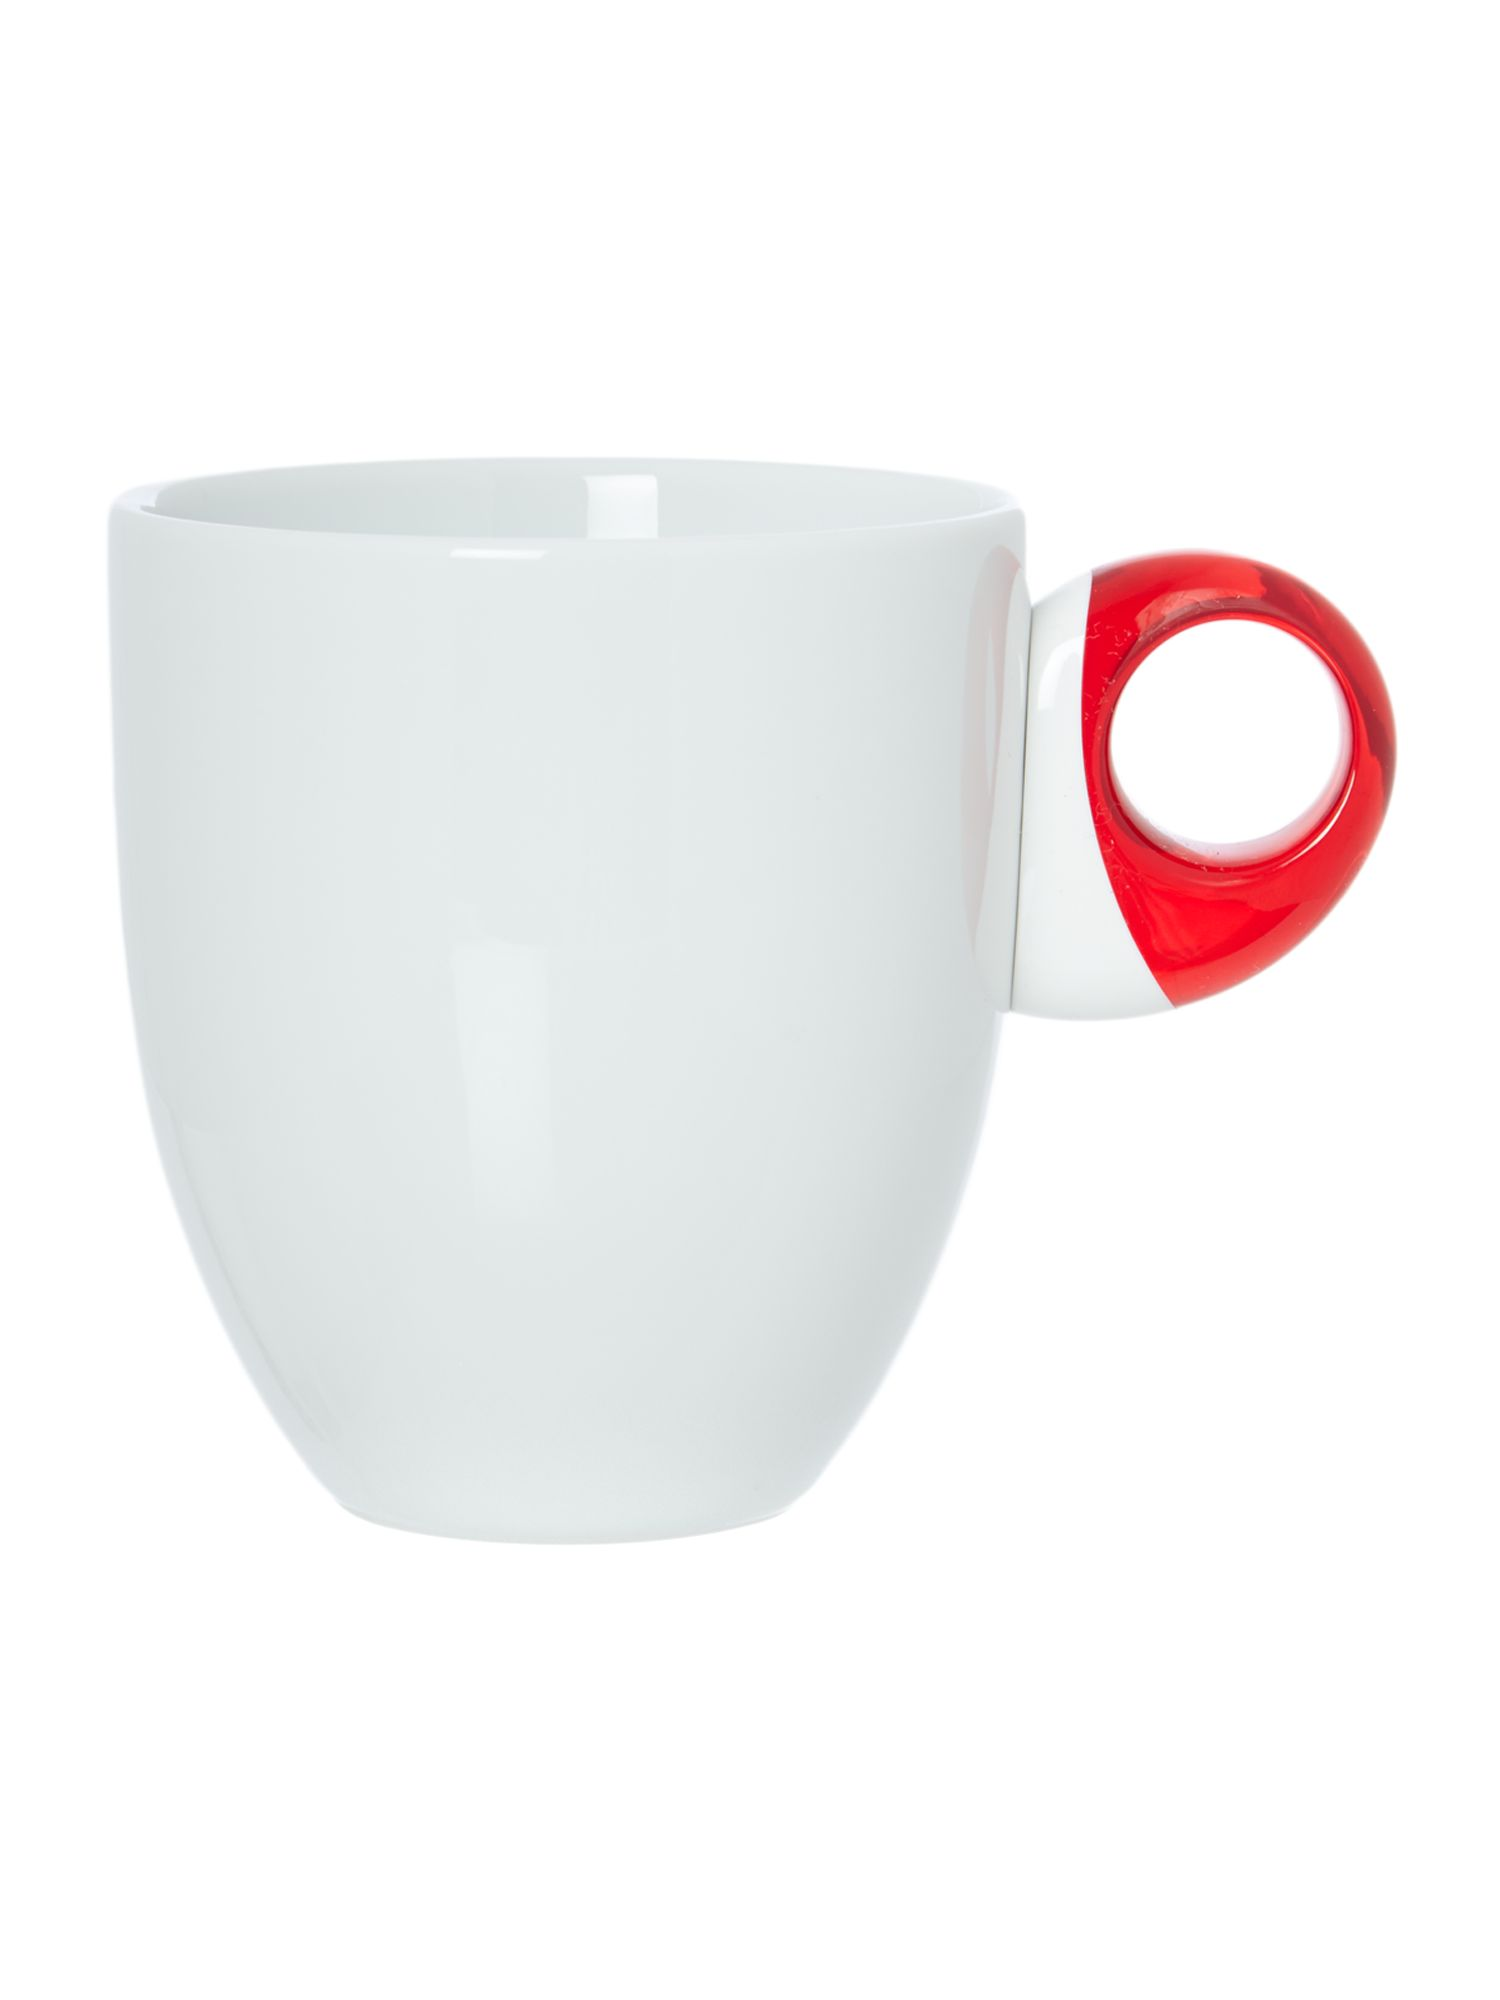 Mug Feeling Transparent Red